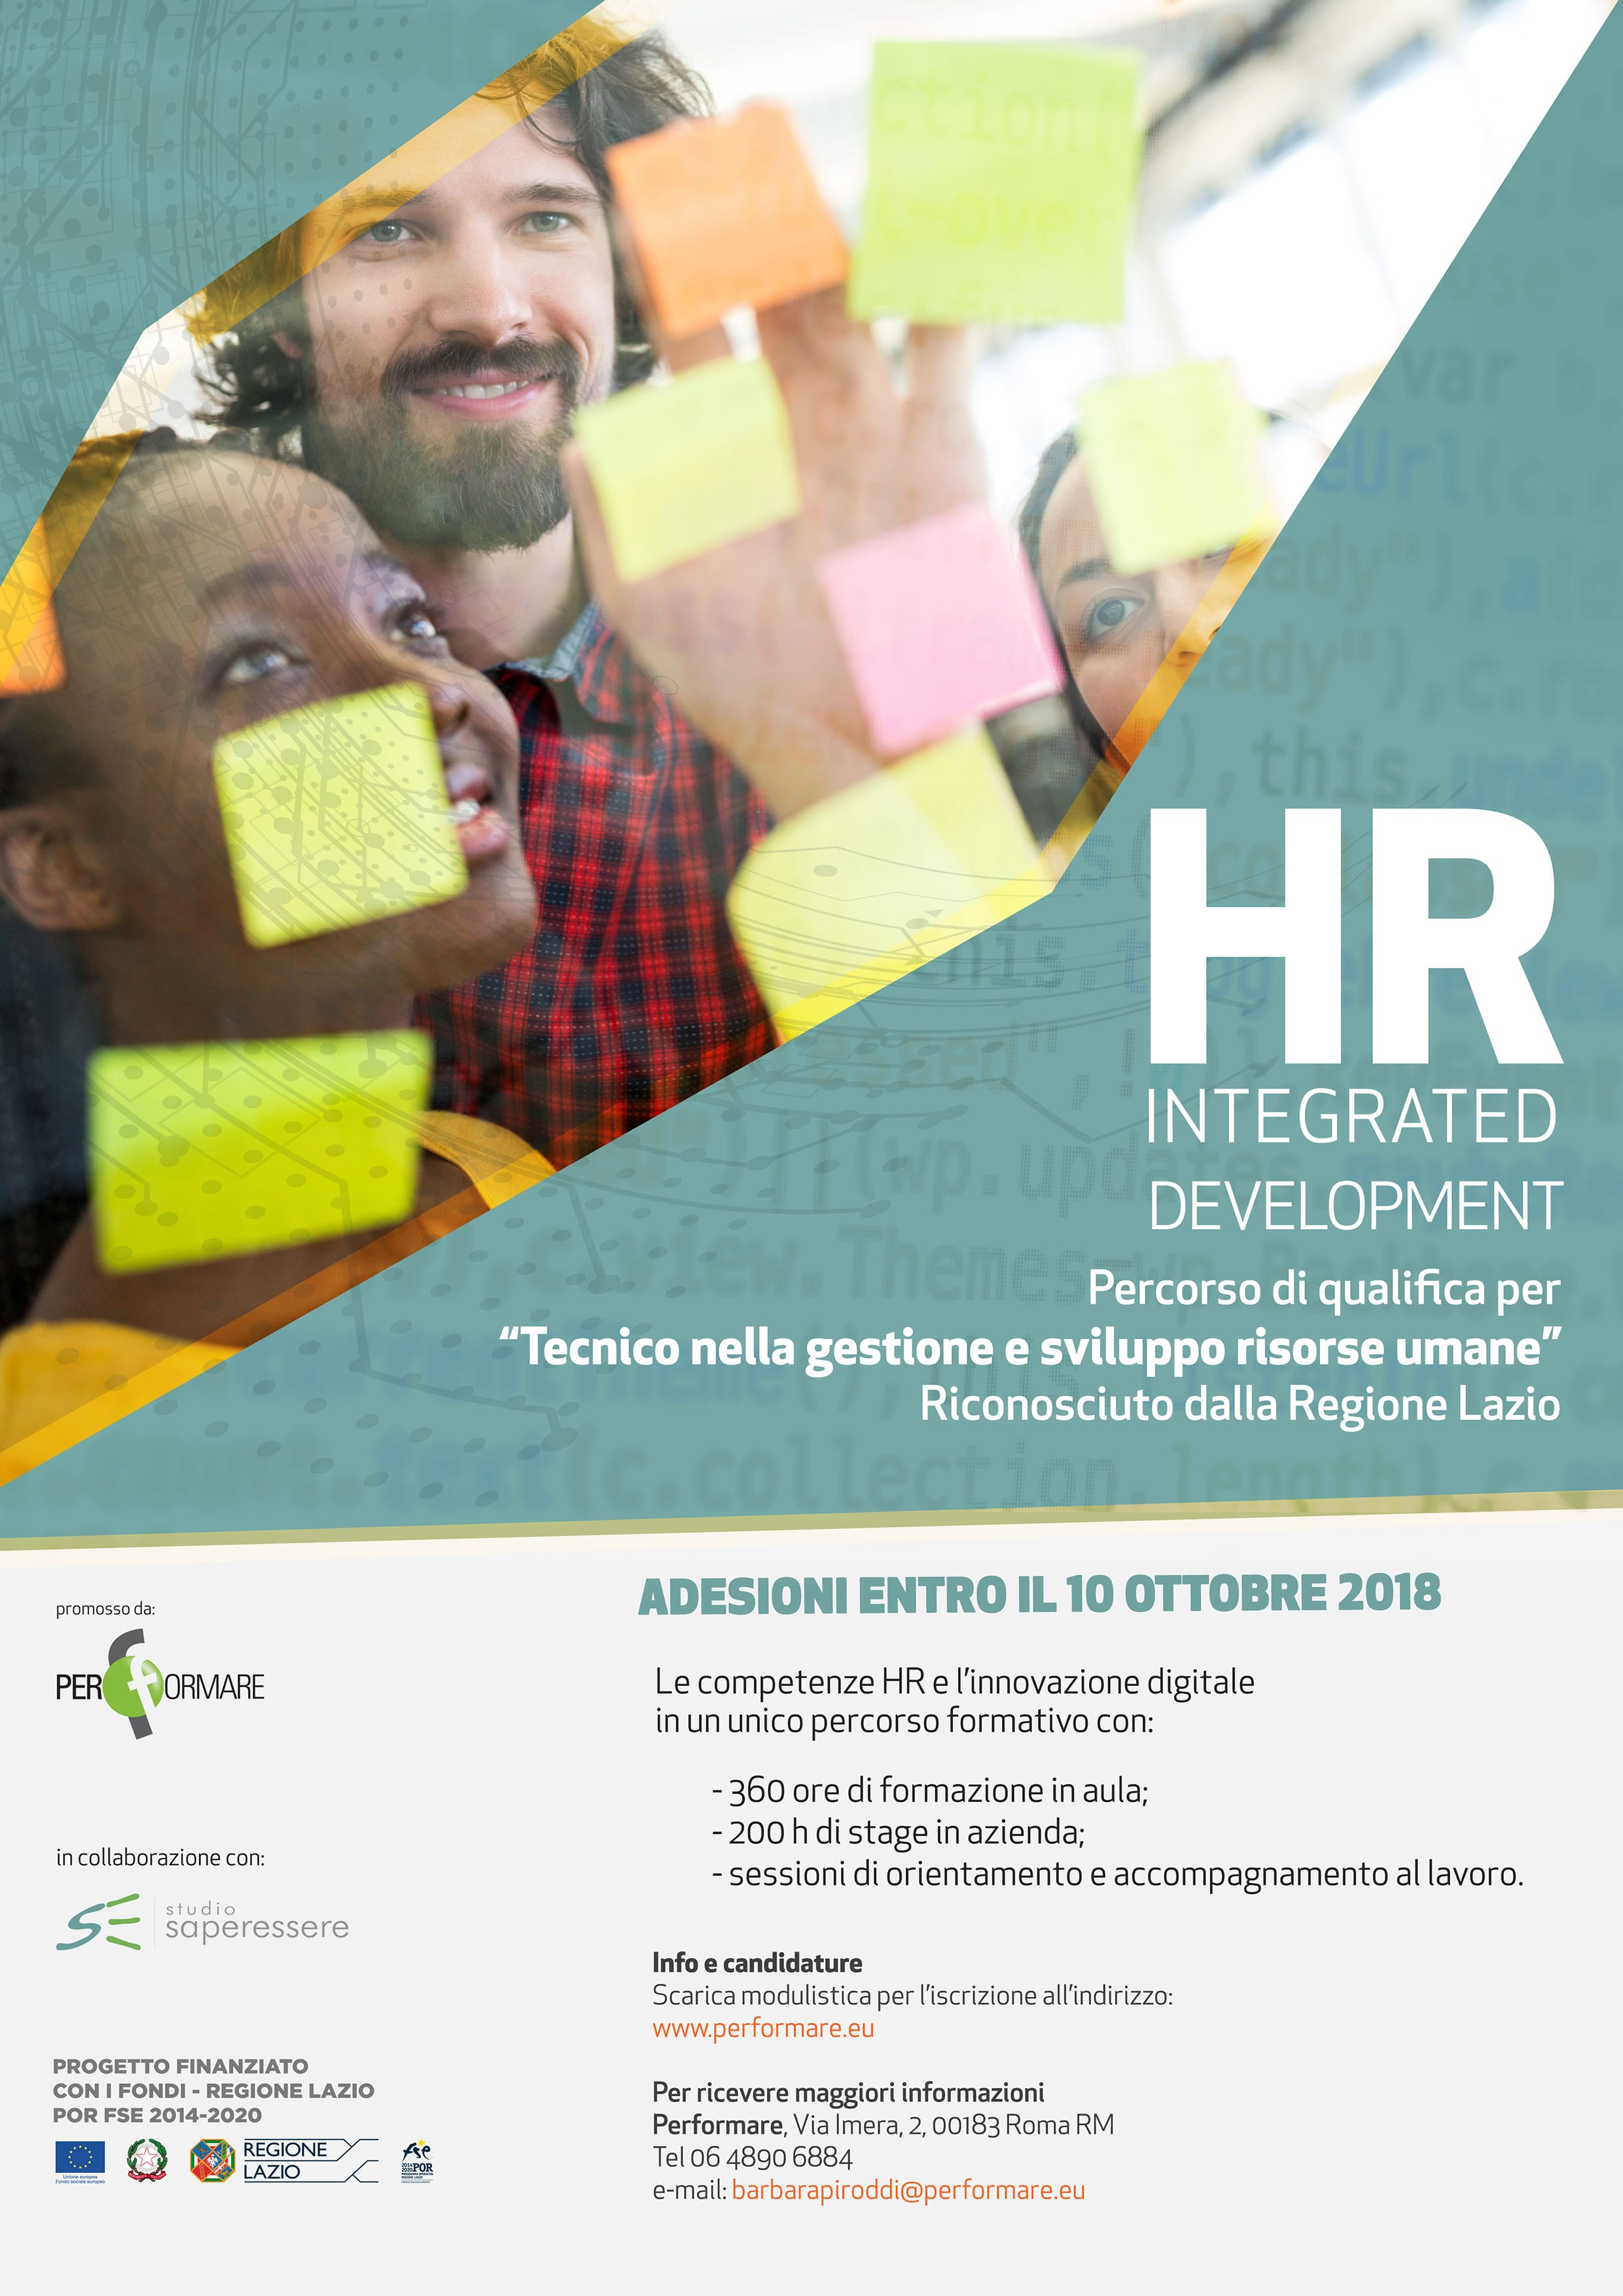 HR INTEGRATED DEV PERFORMARE A4-min